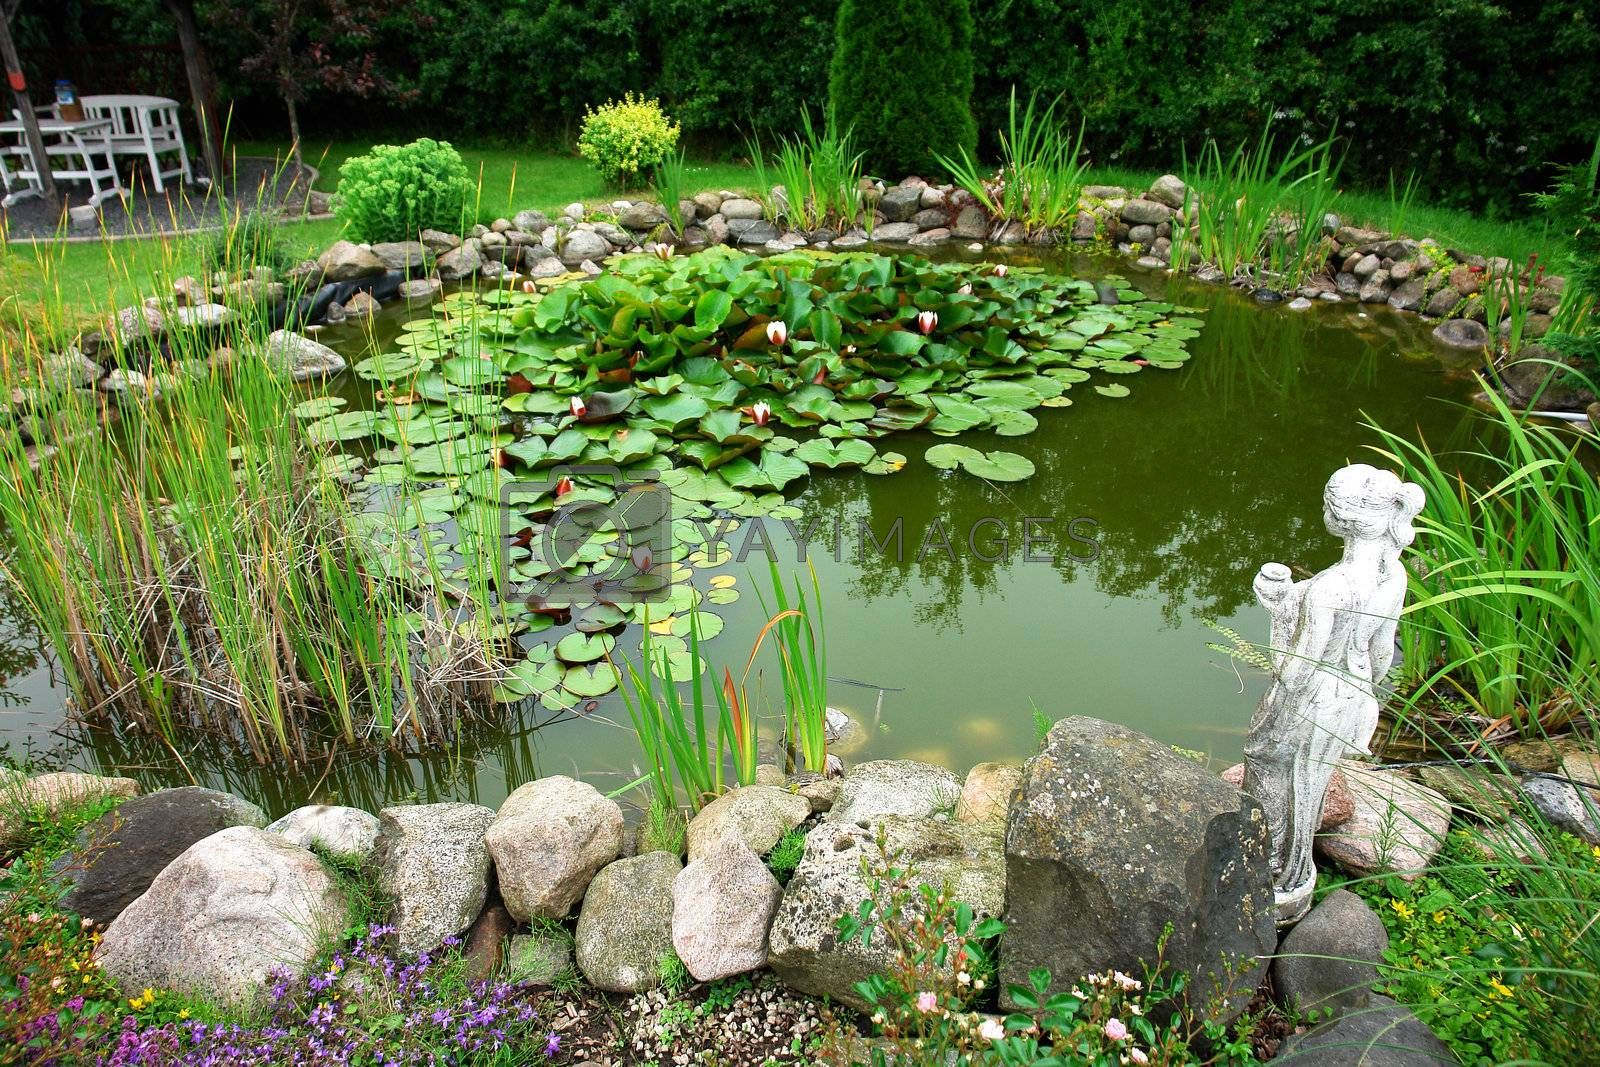 Beautiful classical garden fish pond gardening background Royalty Free  Stock Image | YAYIMAGES - Royalty Free Stock Photos and Vectors